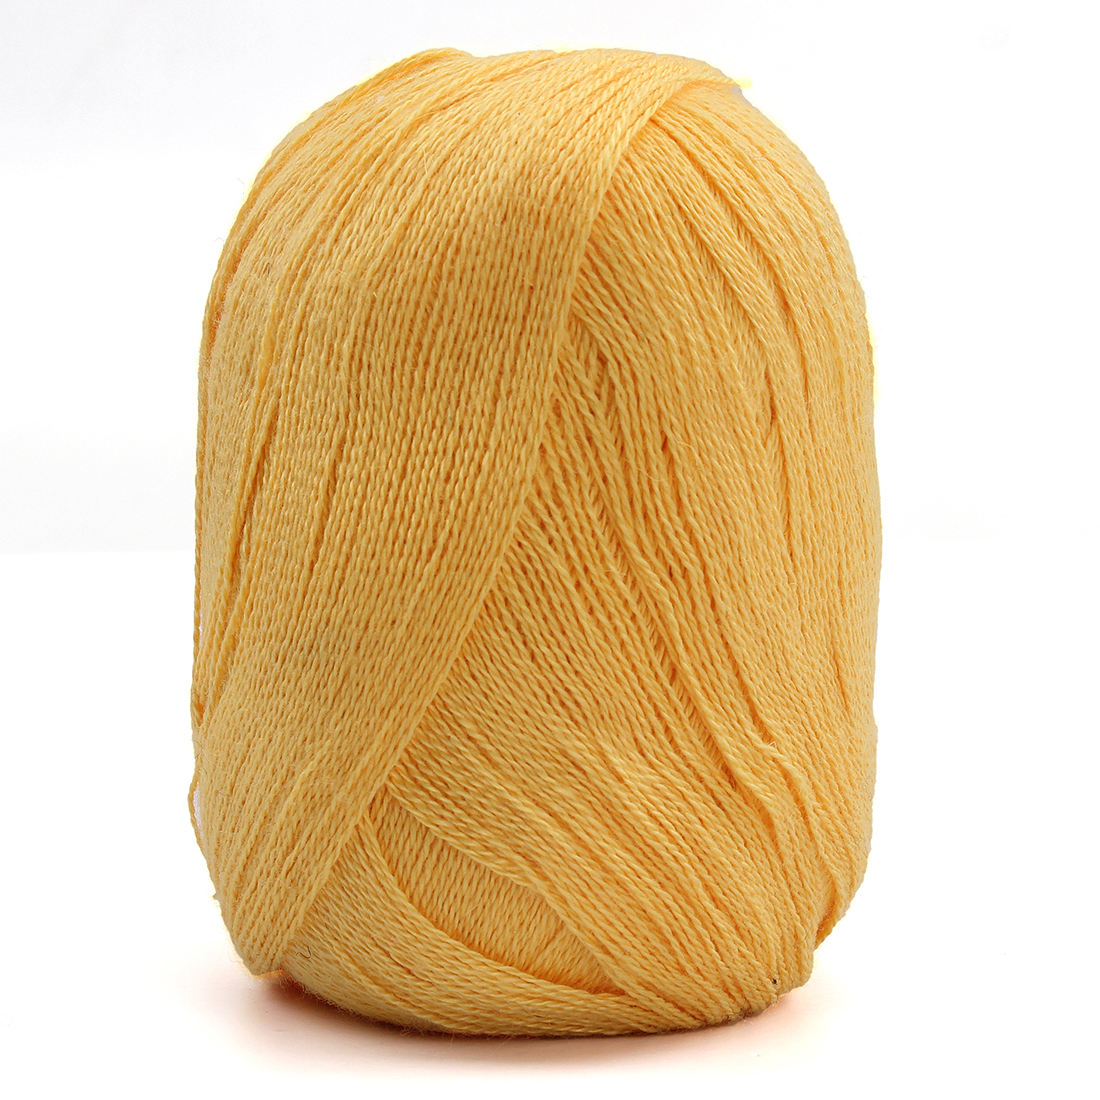 Cashmere Knitting Yarn : Crafts > Needlecrafts & Yarn > Yarn